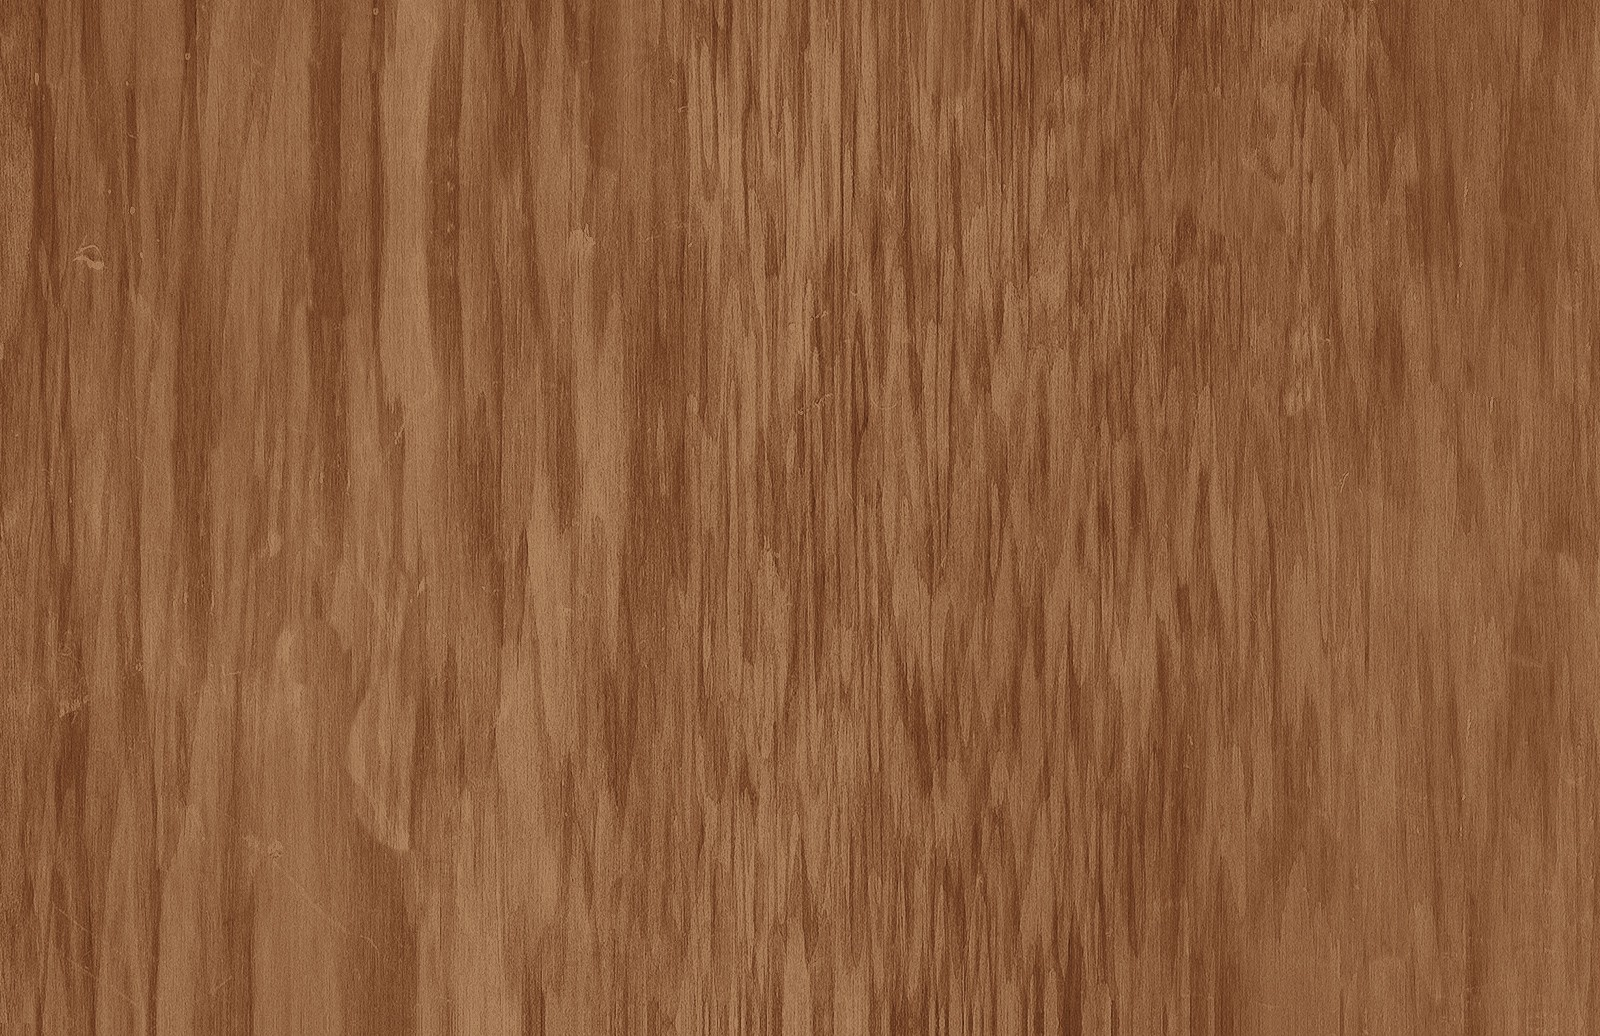 Free Seamless Wood Textures 1